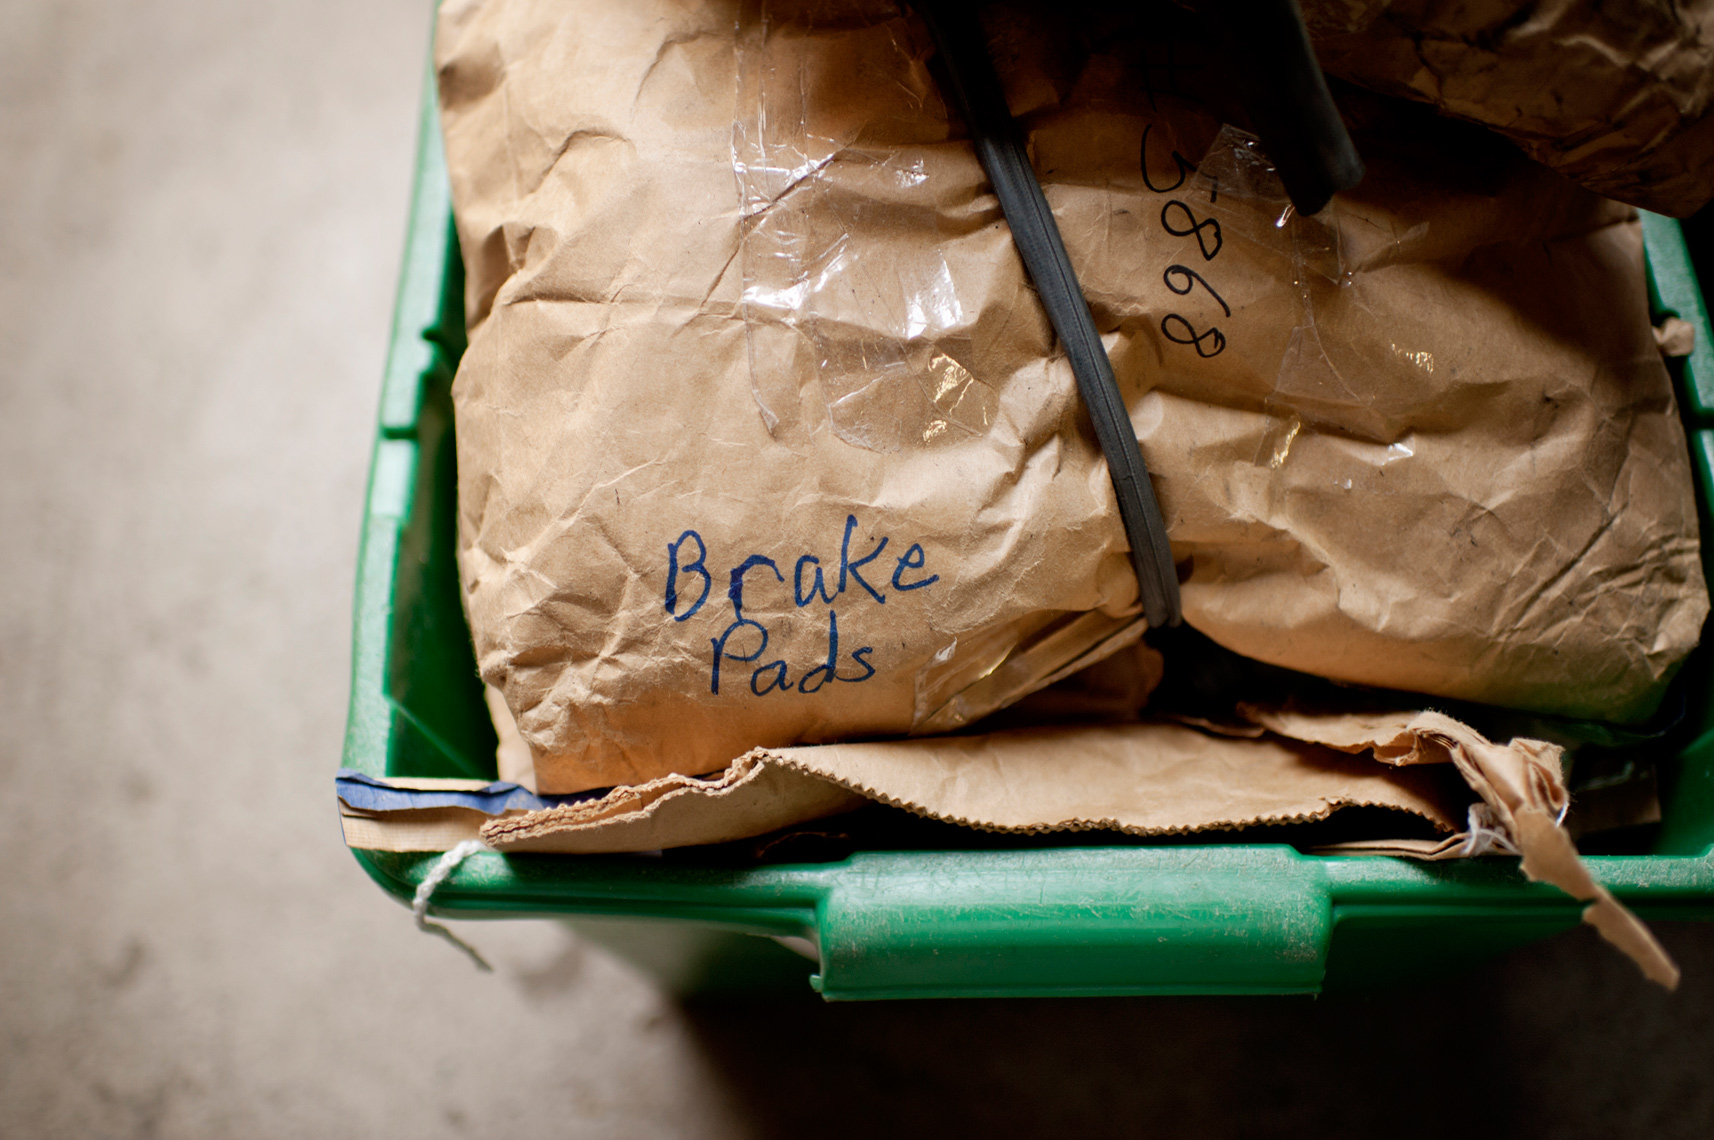 donated brake pads headed to third world countries for use on bikes to transform communities